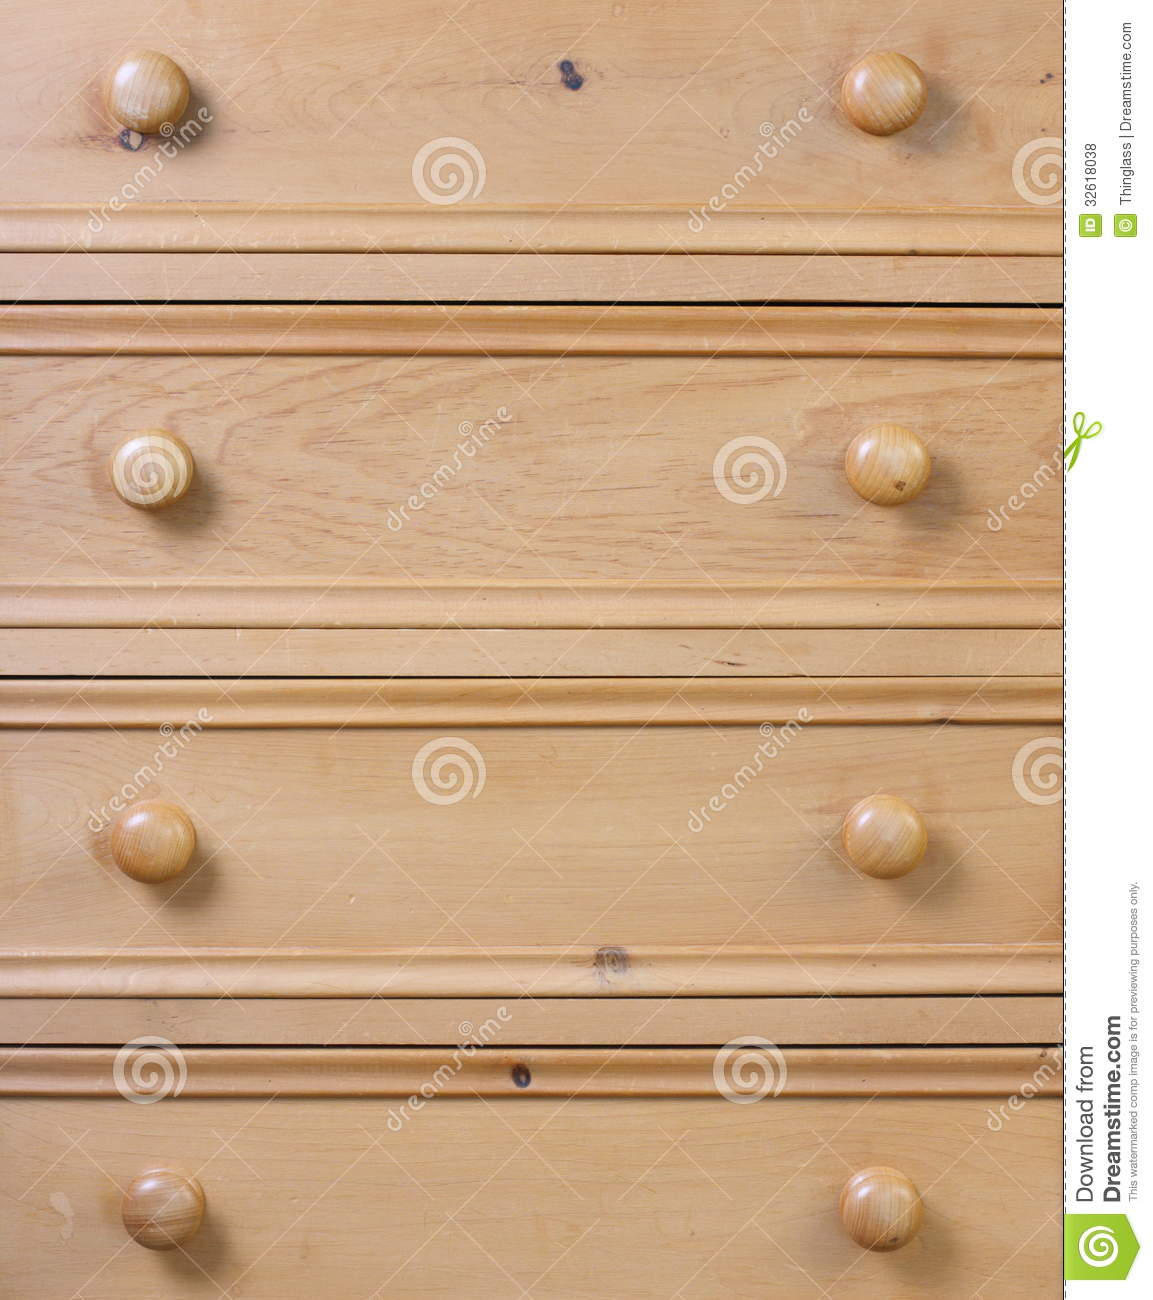 Pine Chest Of Drawers Stock Photo Image Of Detail Texture 32618038